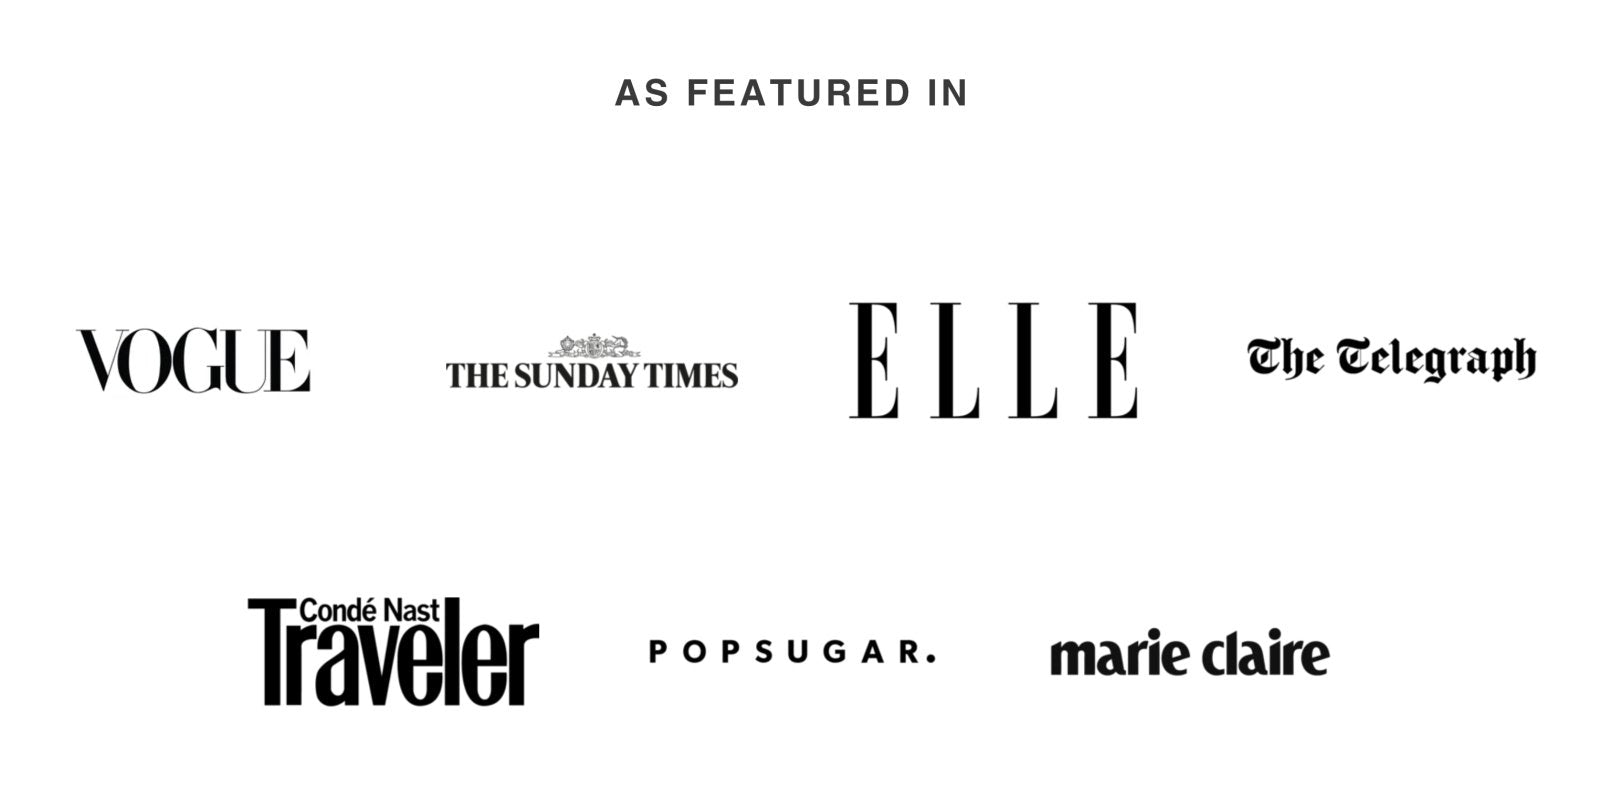 as featured in in VOGUE ELLE The Sunday Times marie claire The Telegraph popsugar Conde Nast Traveler